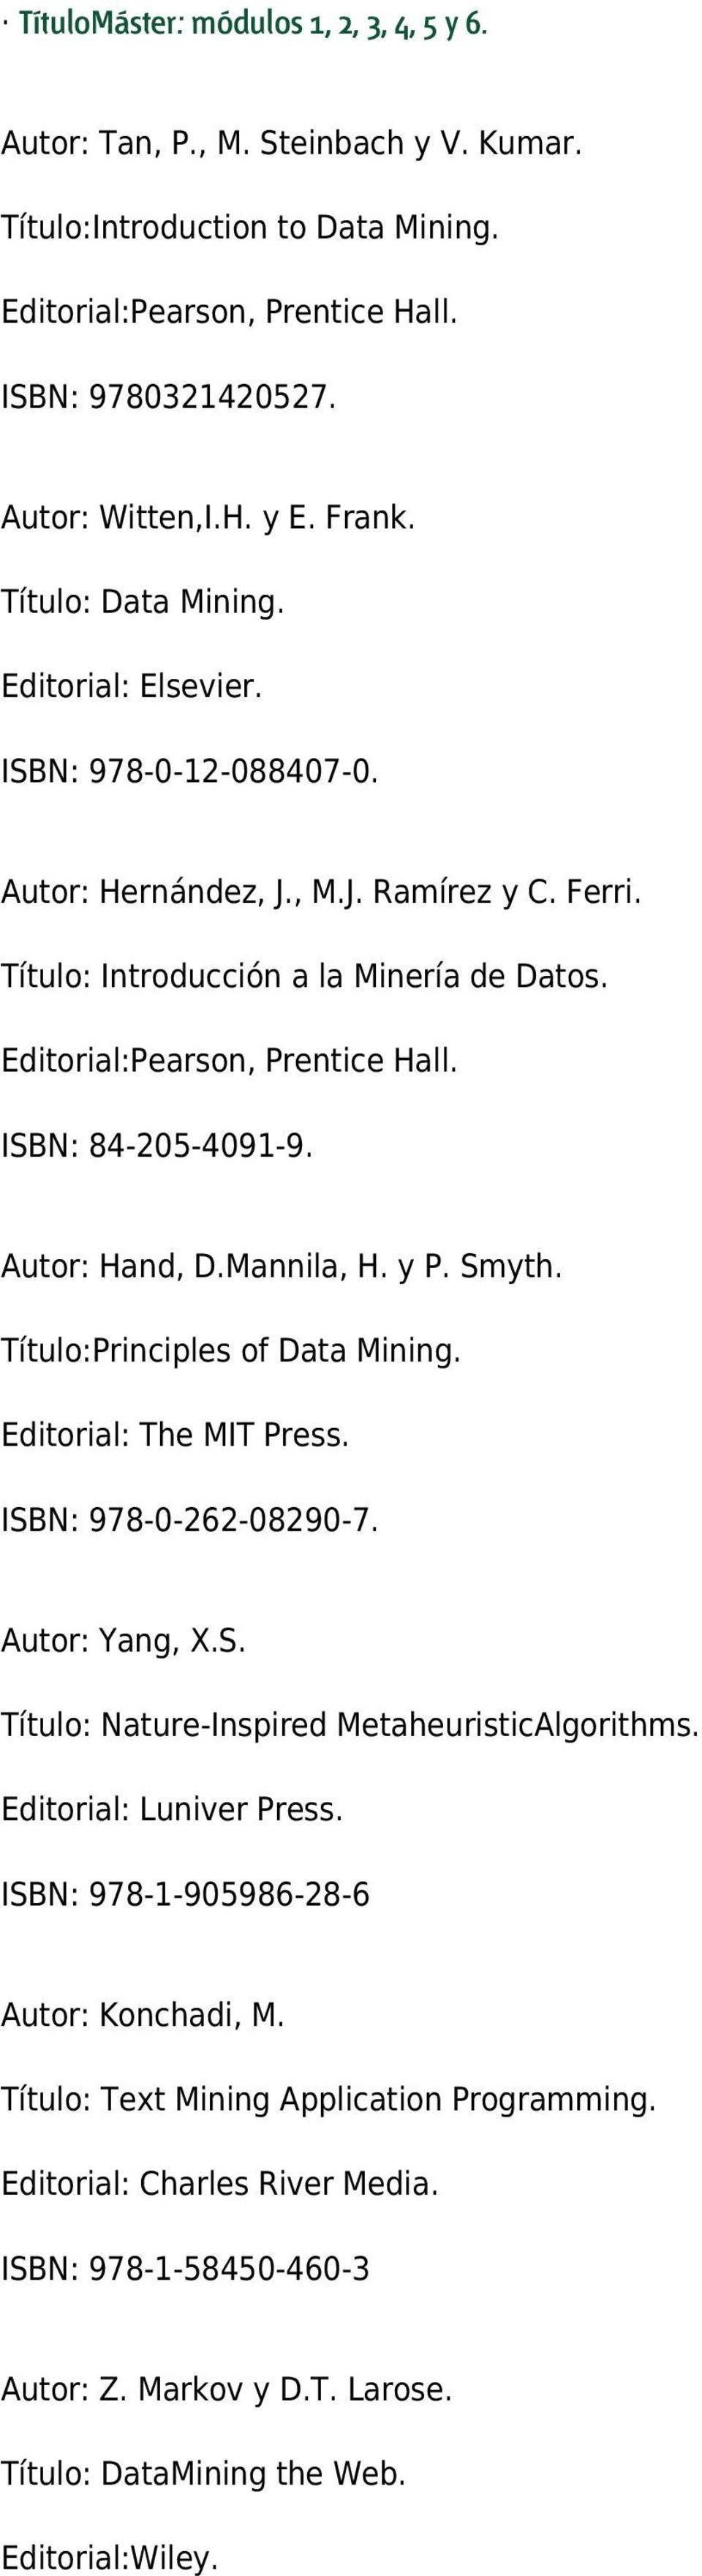 ISBN: 84-205-4091-9. Autor: Hand, D.Mannila, H. y P. Smyth. Título:Principles of Data Mining. Editorial: The MIT Press. ISBN: 978-0-262-08290-7. Autor: Yang, X.S. Título: Nature-Inspired MetaheuristicAlgorithms.